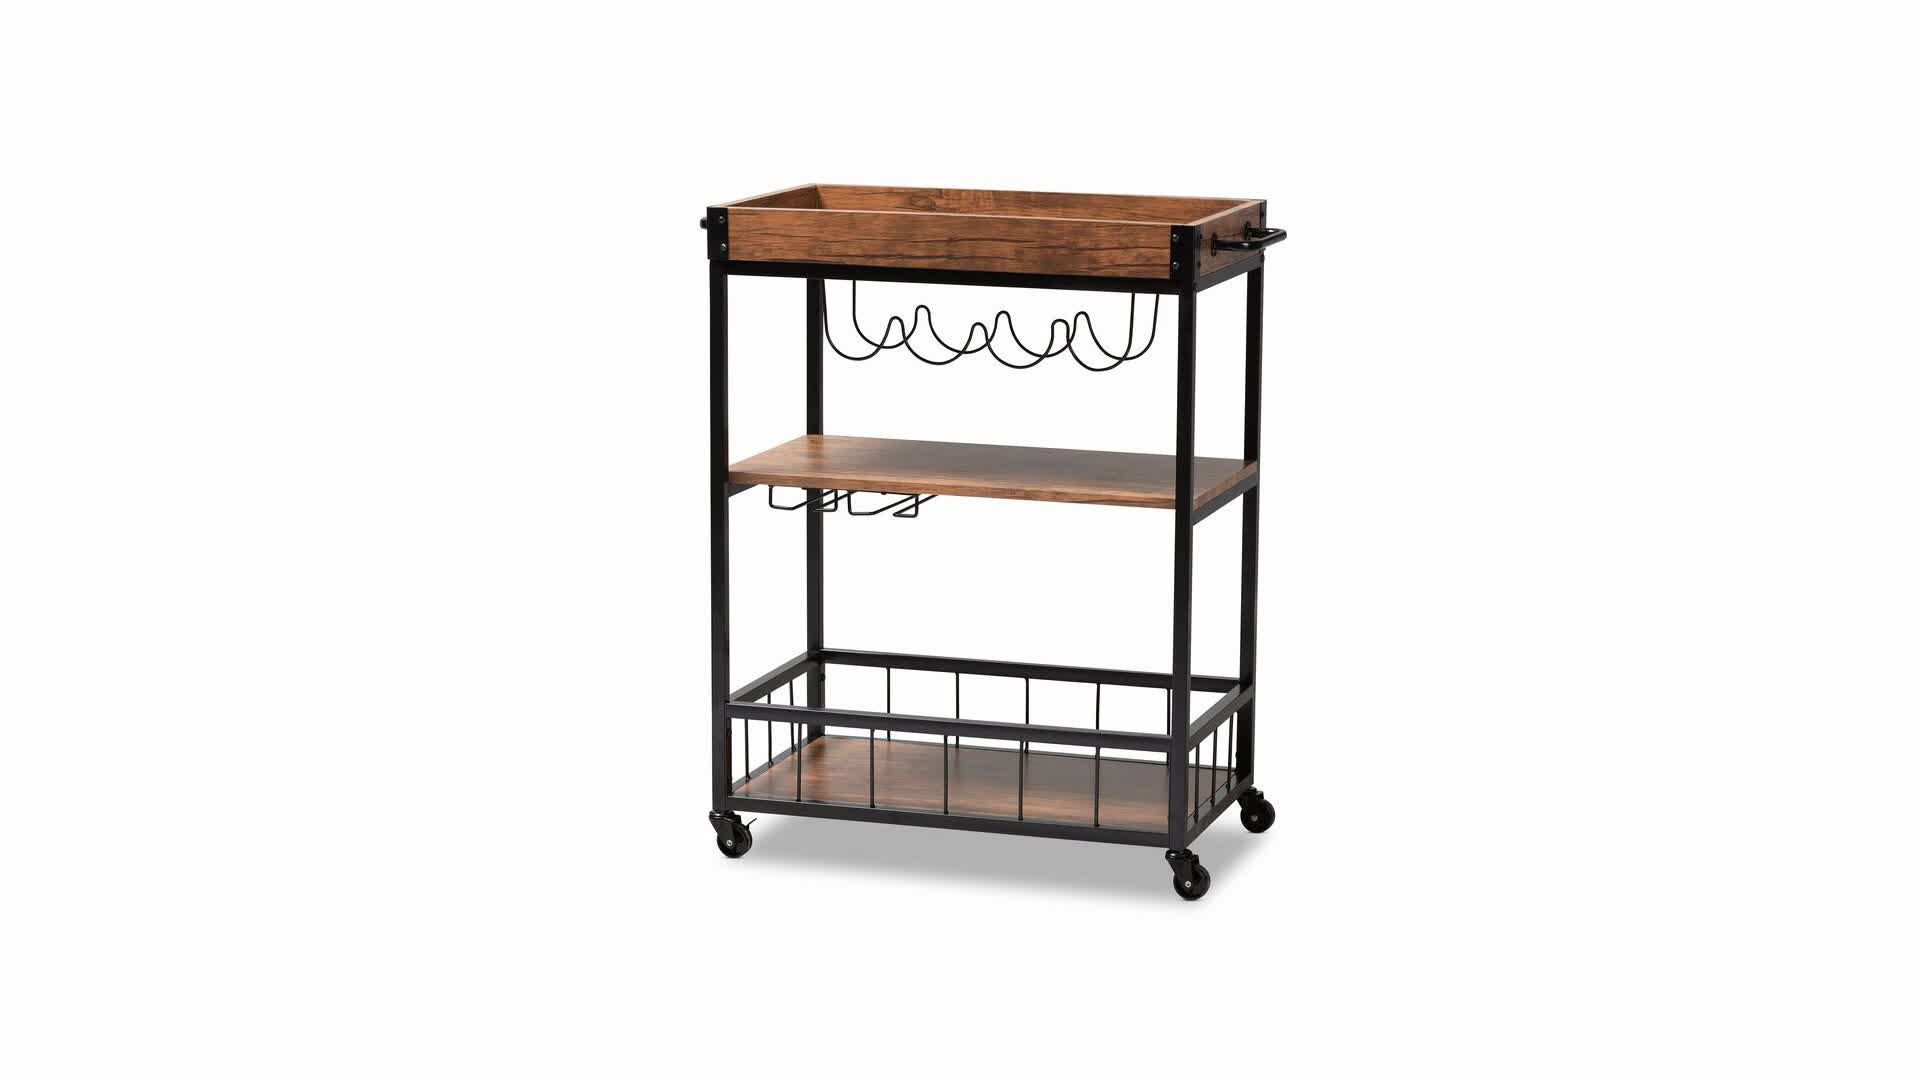 Good Price Restaurant Mini Bar Design Wooden Mobile Dining Room Wine Beer Tea Food Service Serving Cart Trolley View Service Trolley Oem Sunrise Product Details From Fuzhou Sunrise Creation Corporation Limited On Alibaba Com